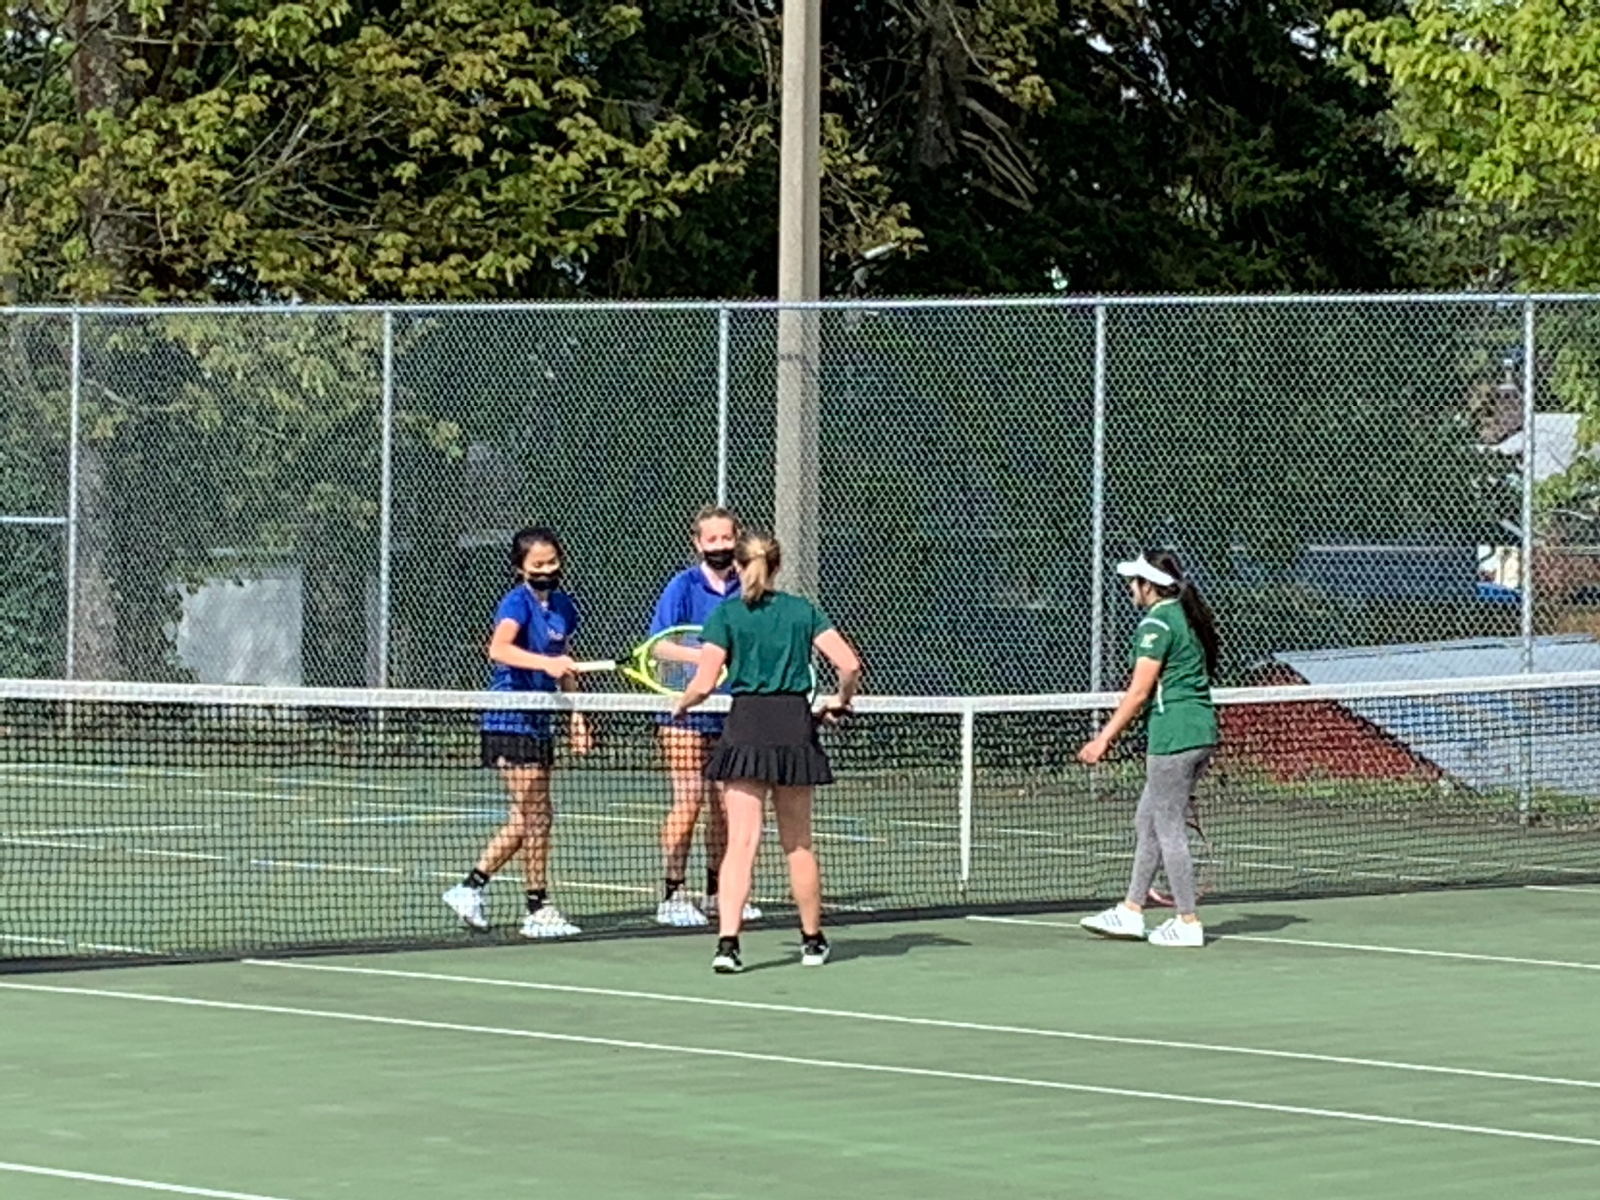 Fife Girls Tennis 5-0 over Clover Park with a surprise lineup change!